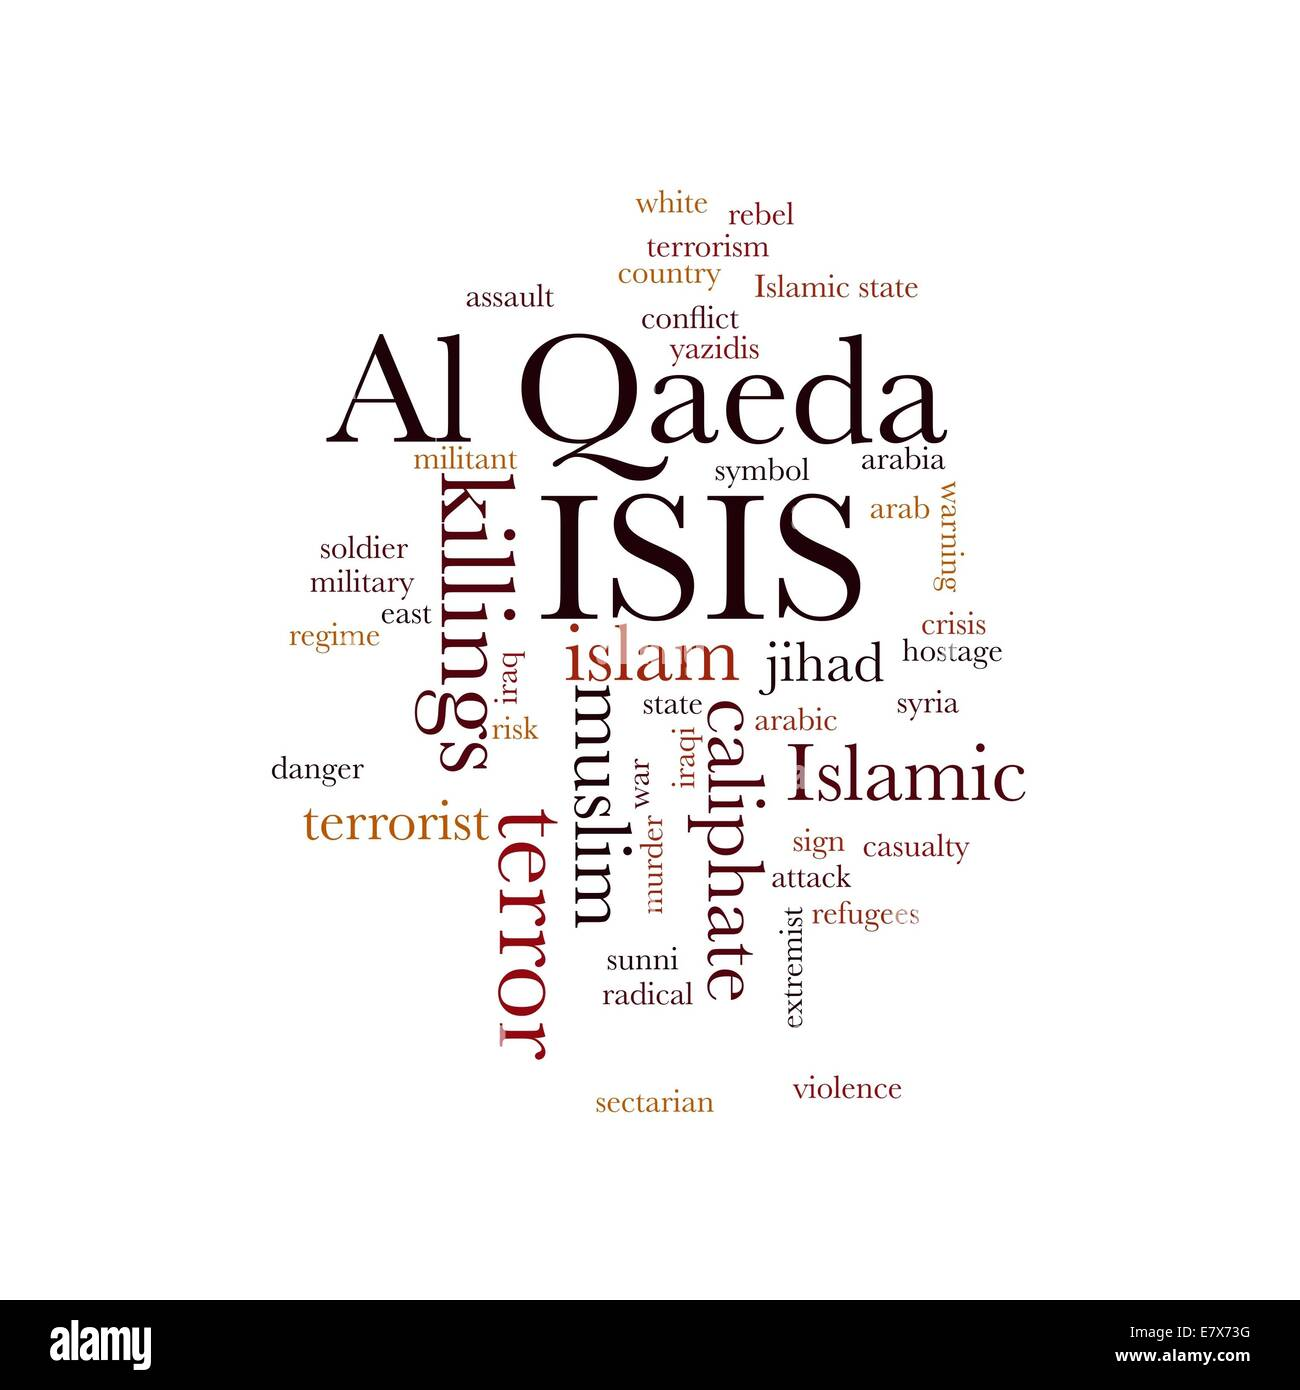 ISIS and Al Qaeda - Stock Image